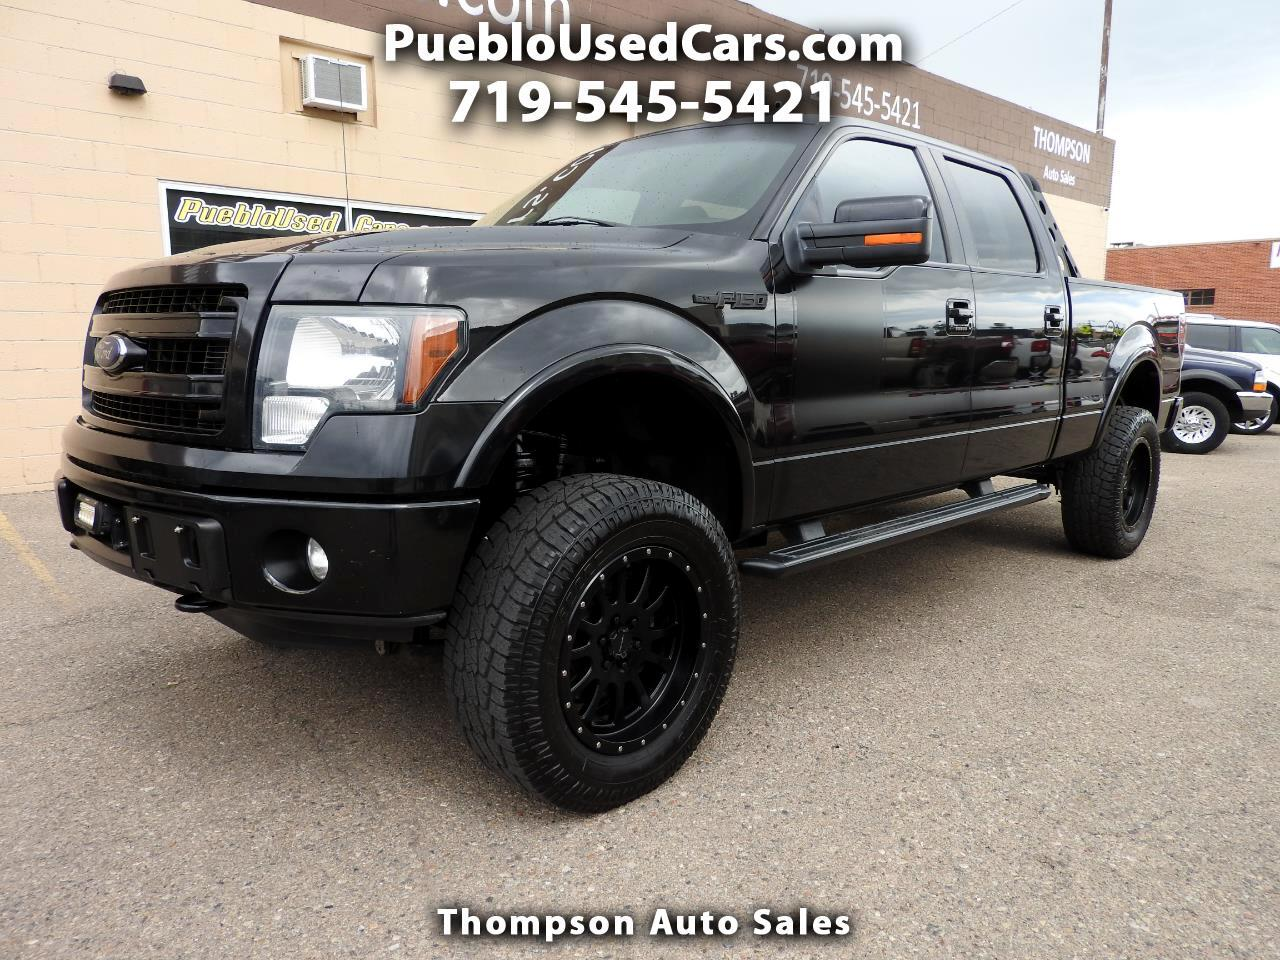 2013 Ford F-150 FX4 SuperCrew 4WD EcoBoost